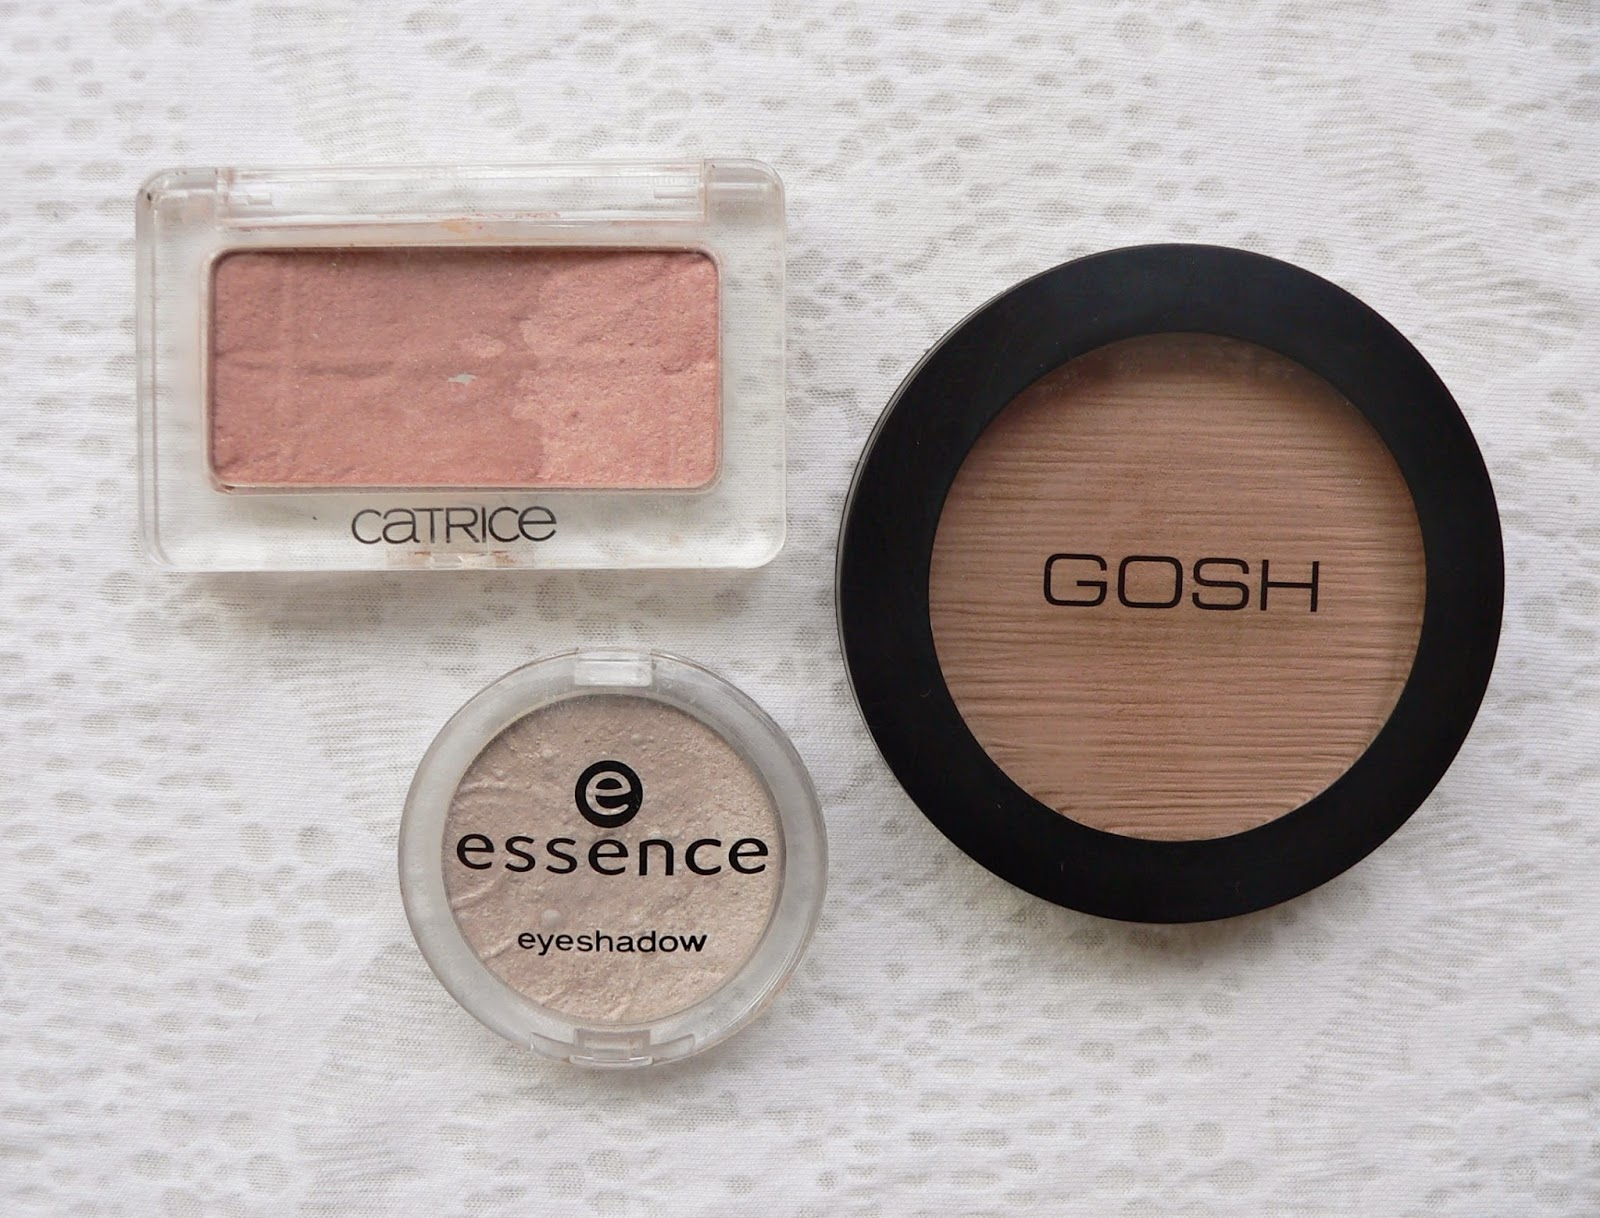 Catrice duo blush, review, budget, Gosh bronzer, Essence oogschaduw highlighter, budget